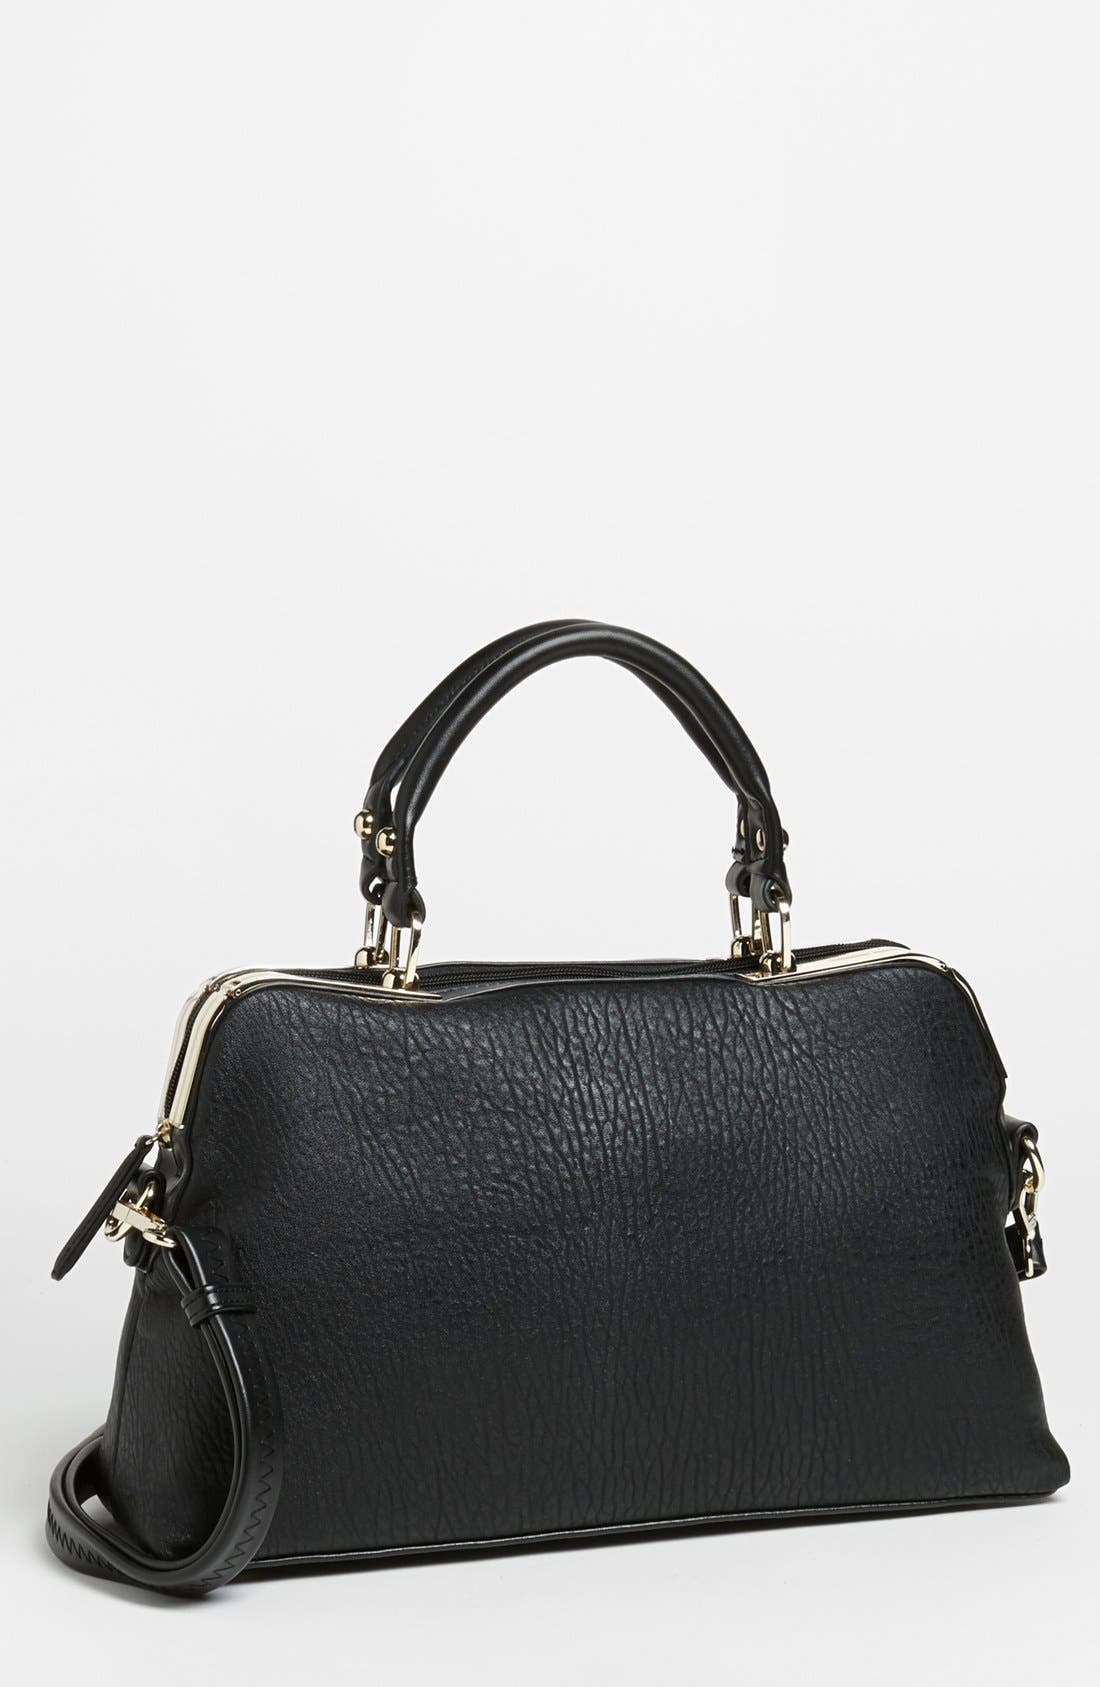 Main Image - Emperia Faux Leather Tote Bag